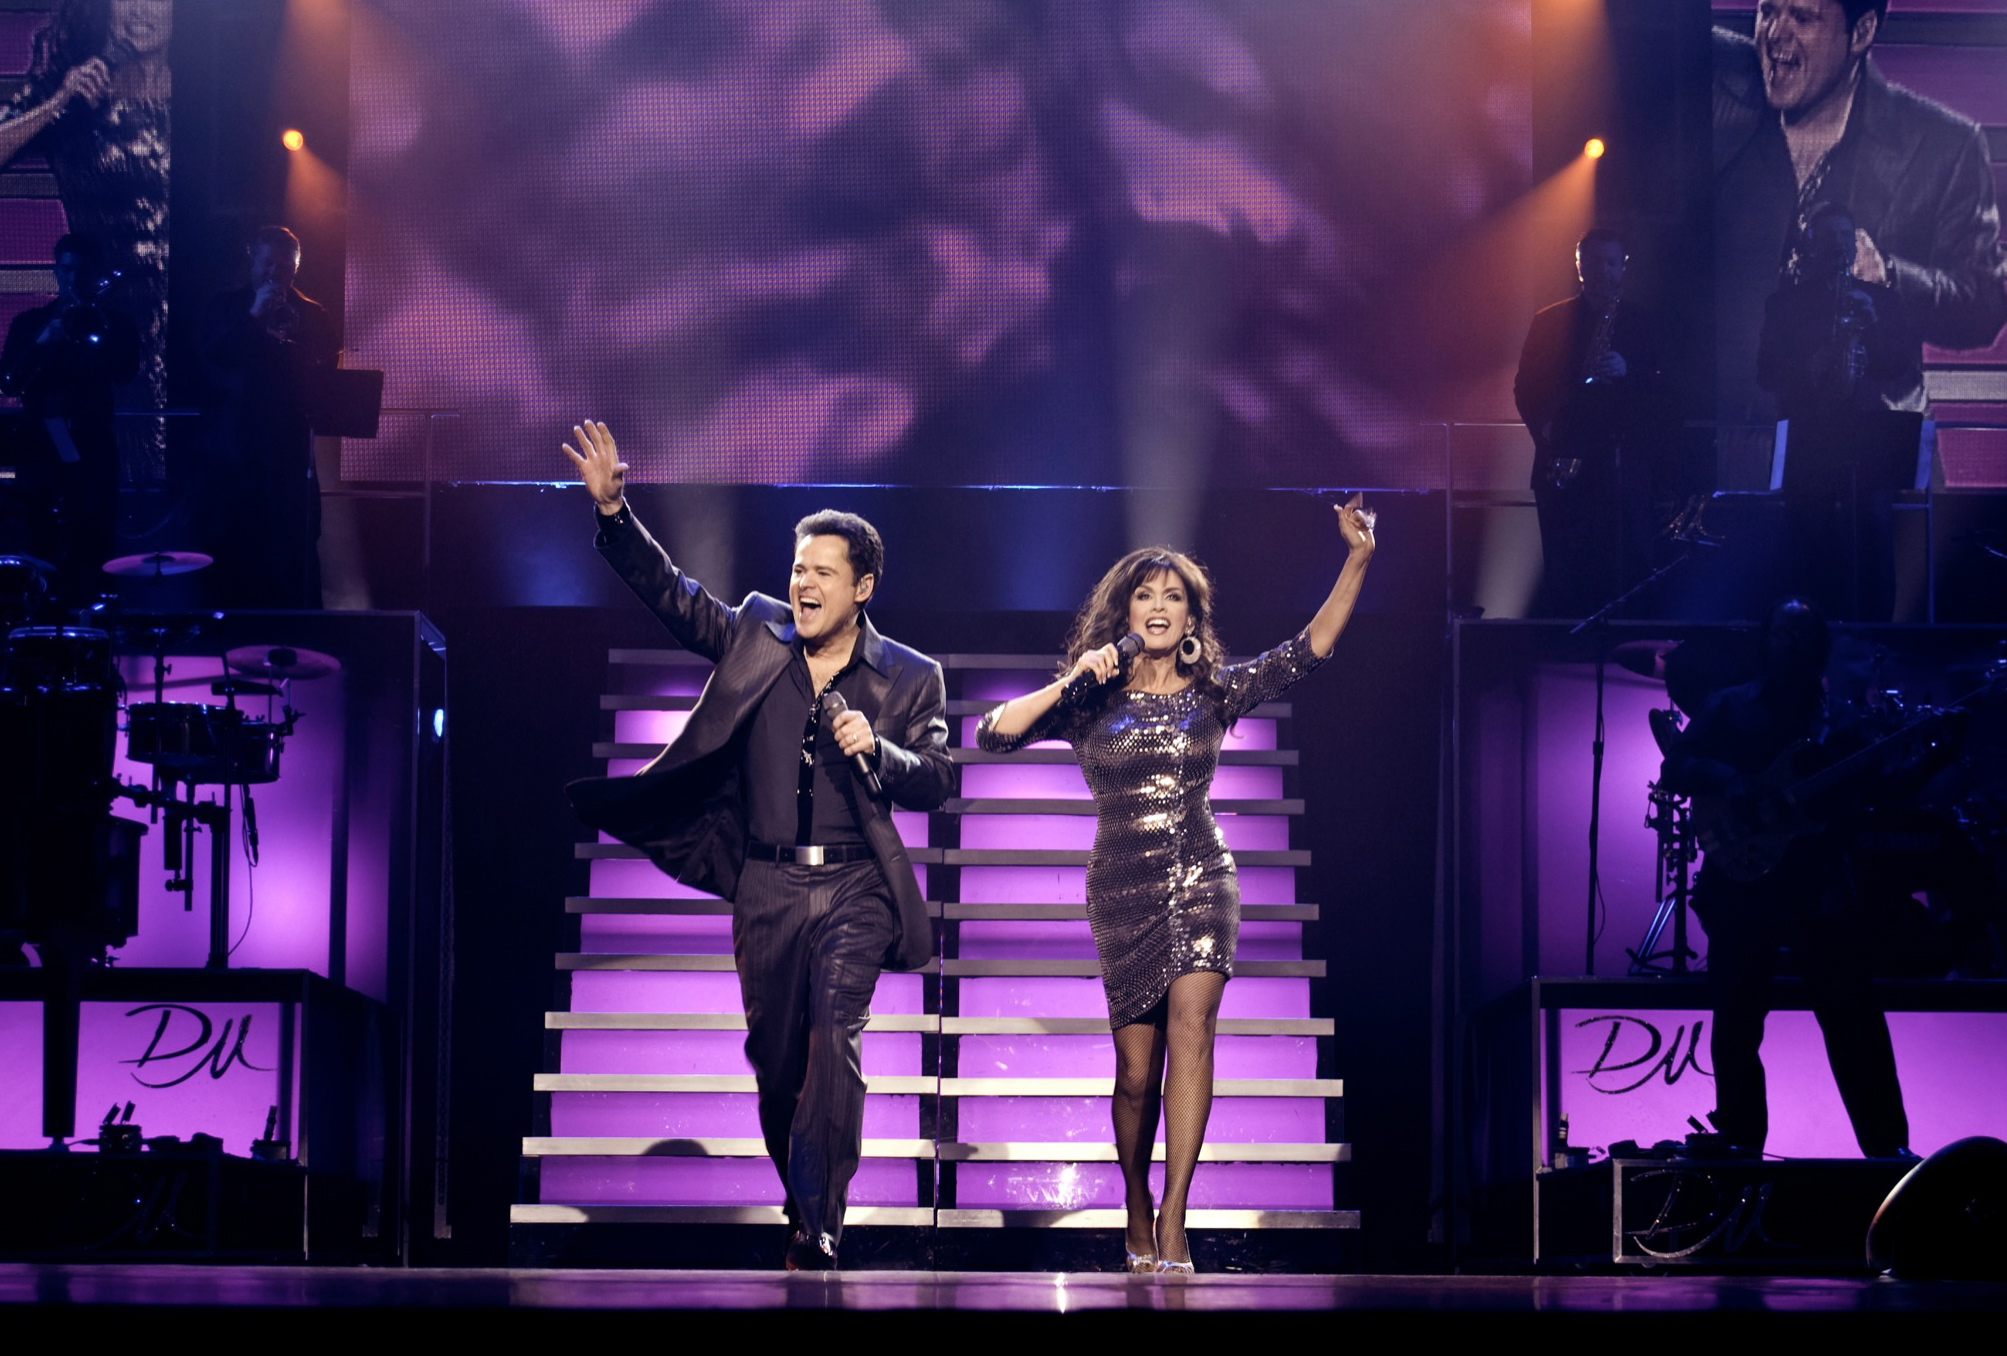 Donny & Marie Bring Christmas Fun To Toronto